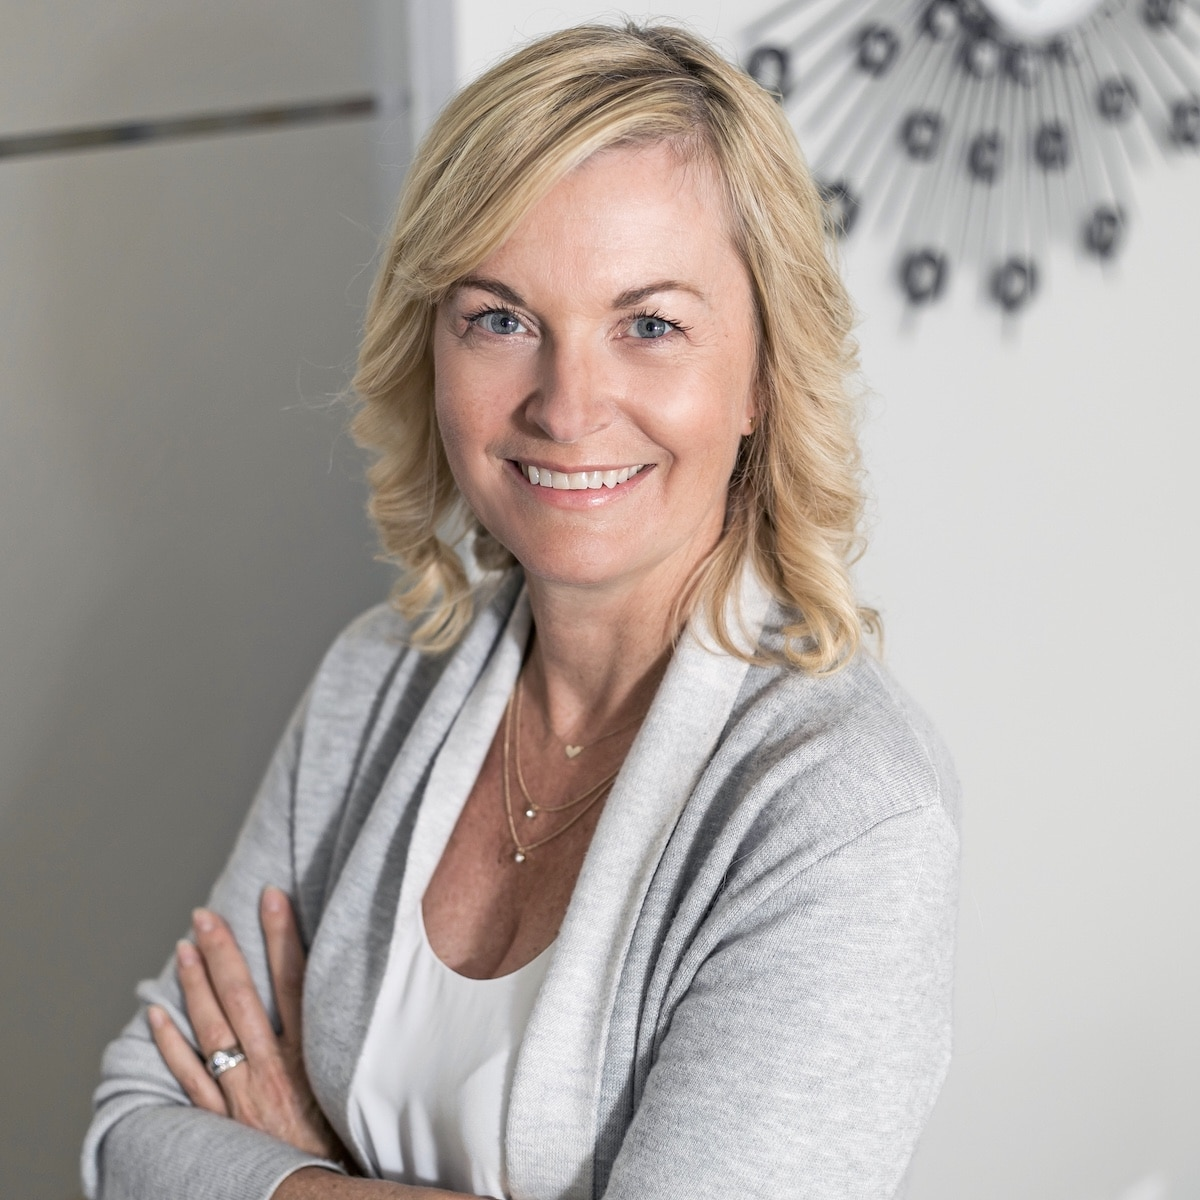 Kim Nutz is a Calgary lawyer at West Legal